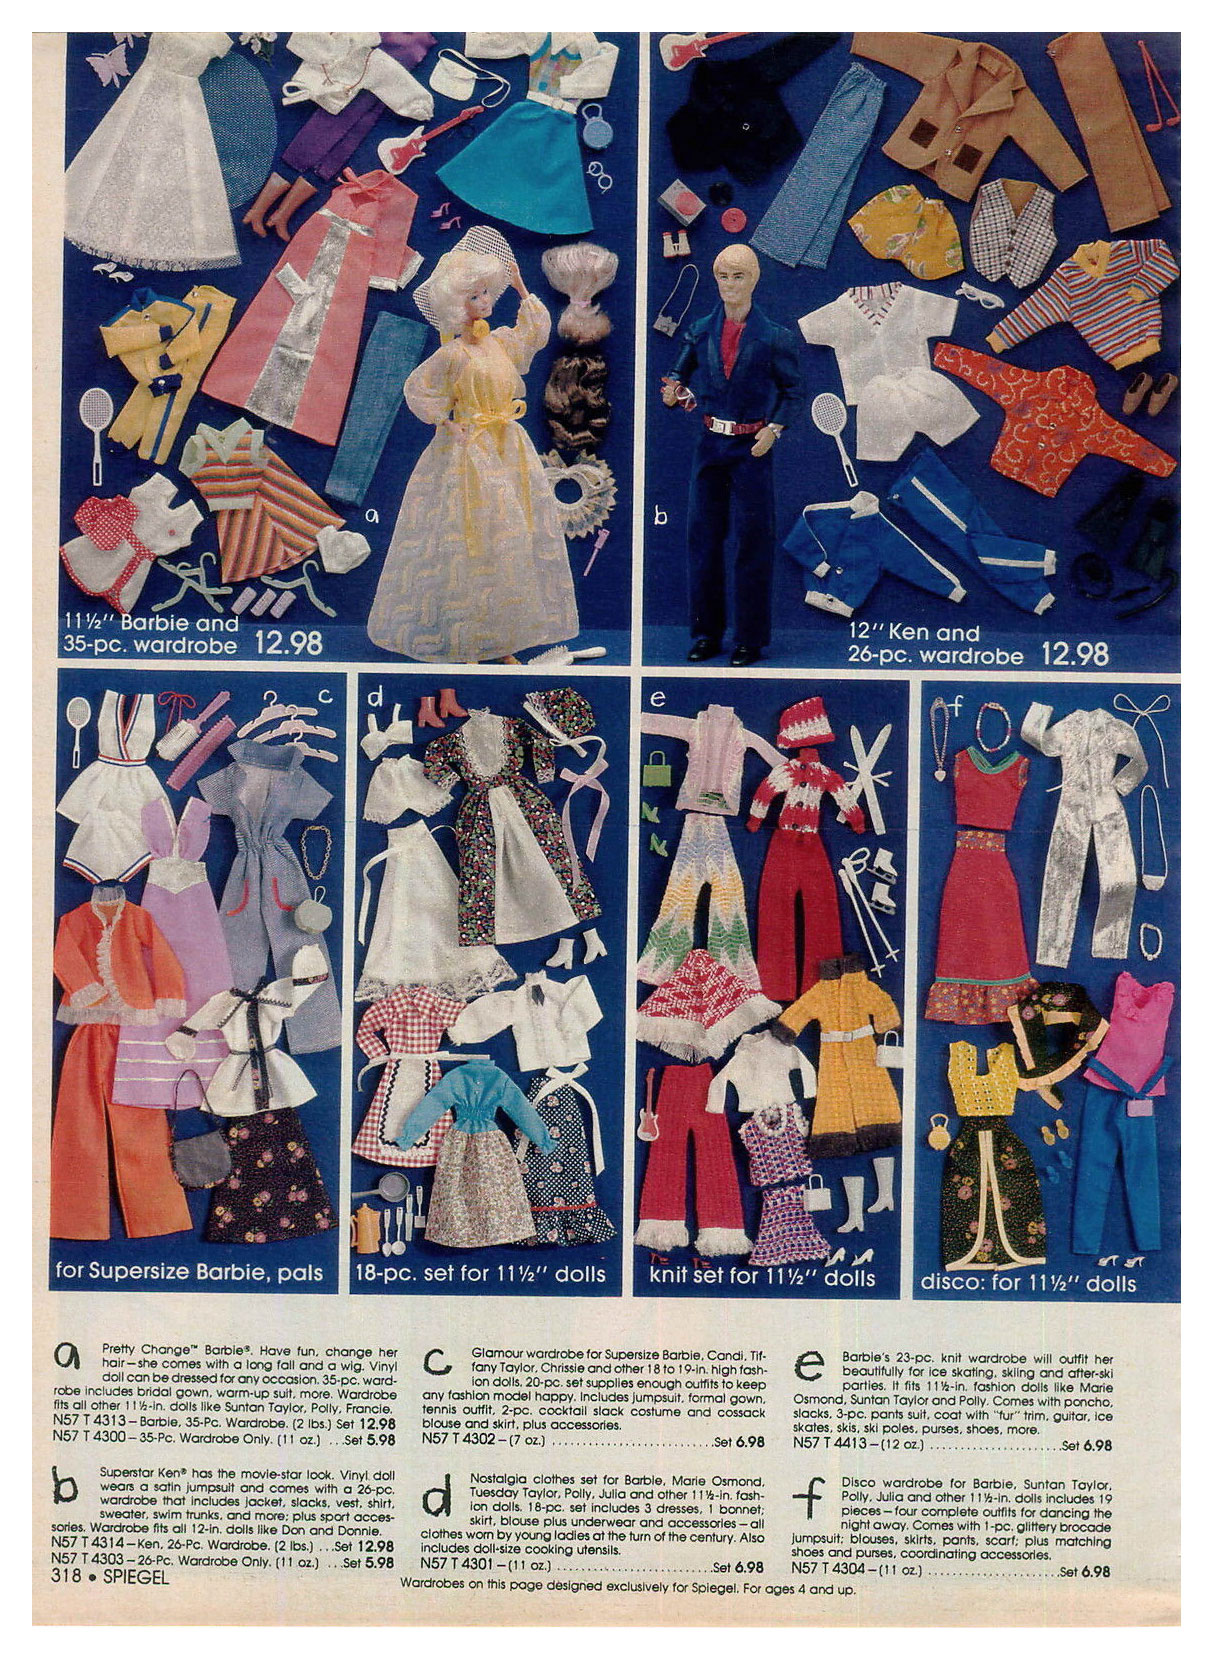 From 1979 Spiegel Christmas catalogue